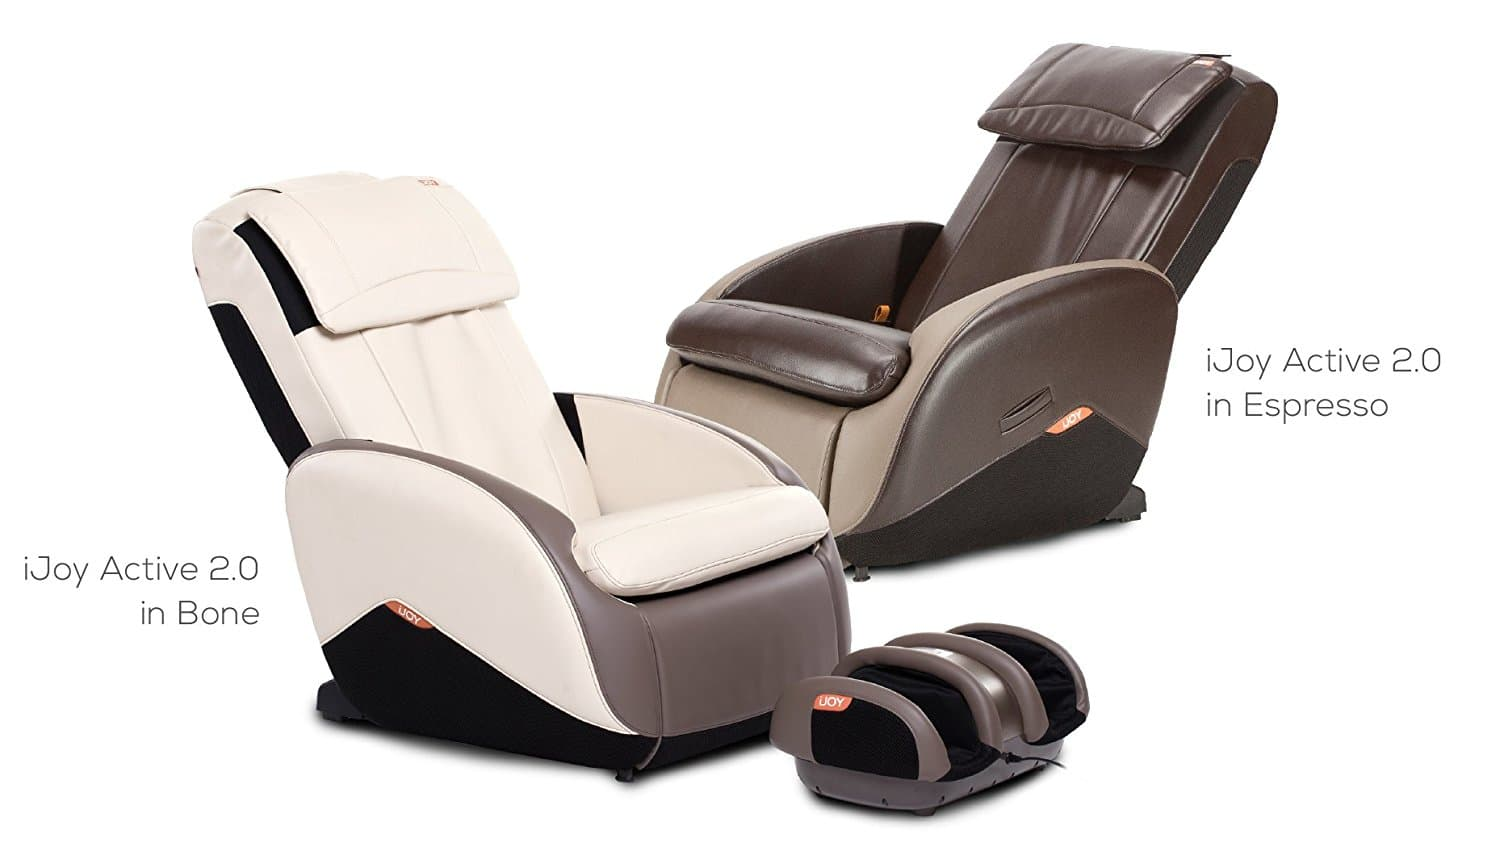 iJoy Active 2.0 Perfect Fit Massage Chair For Sale